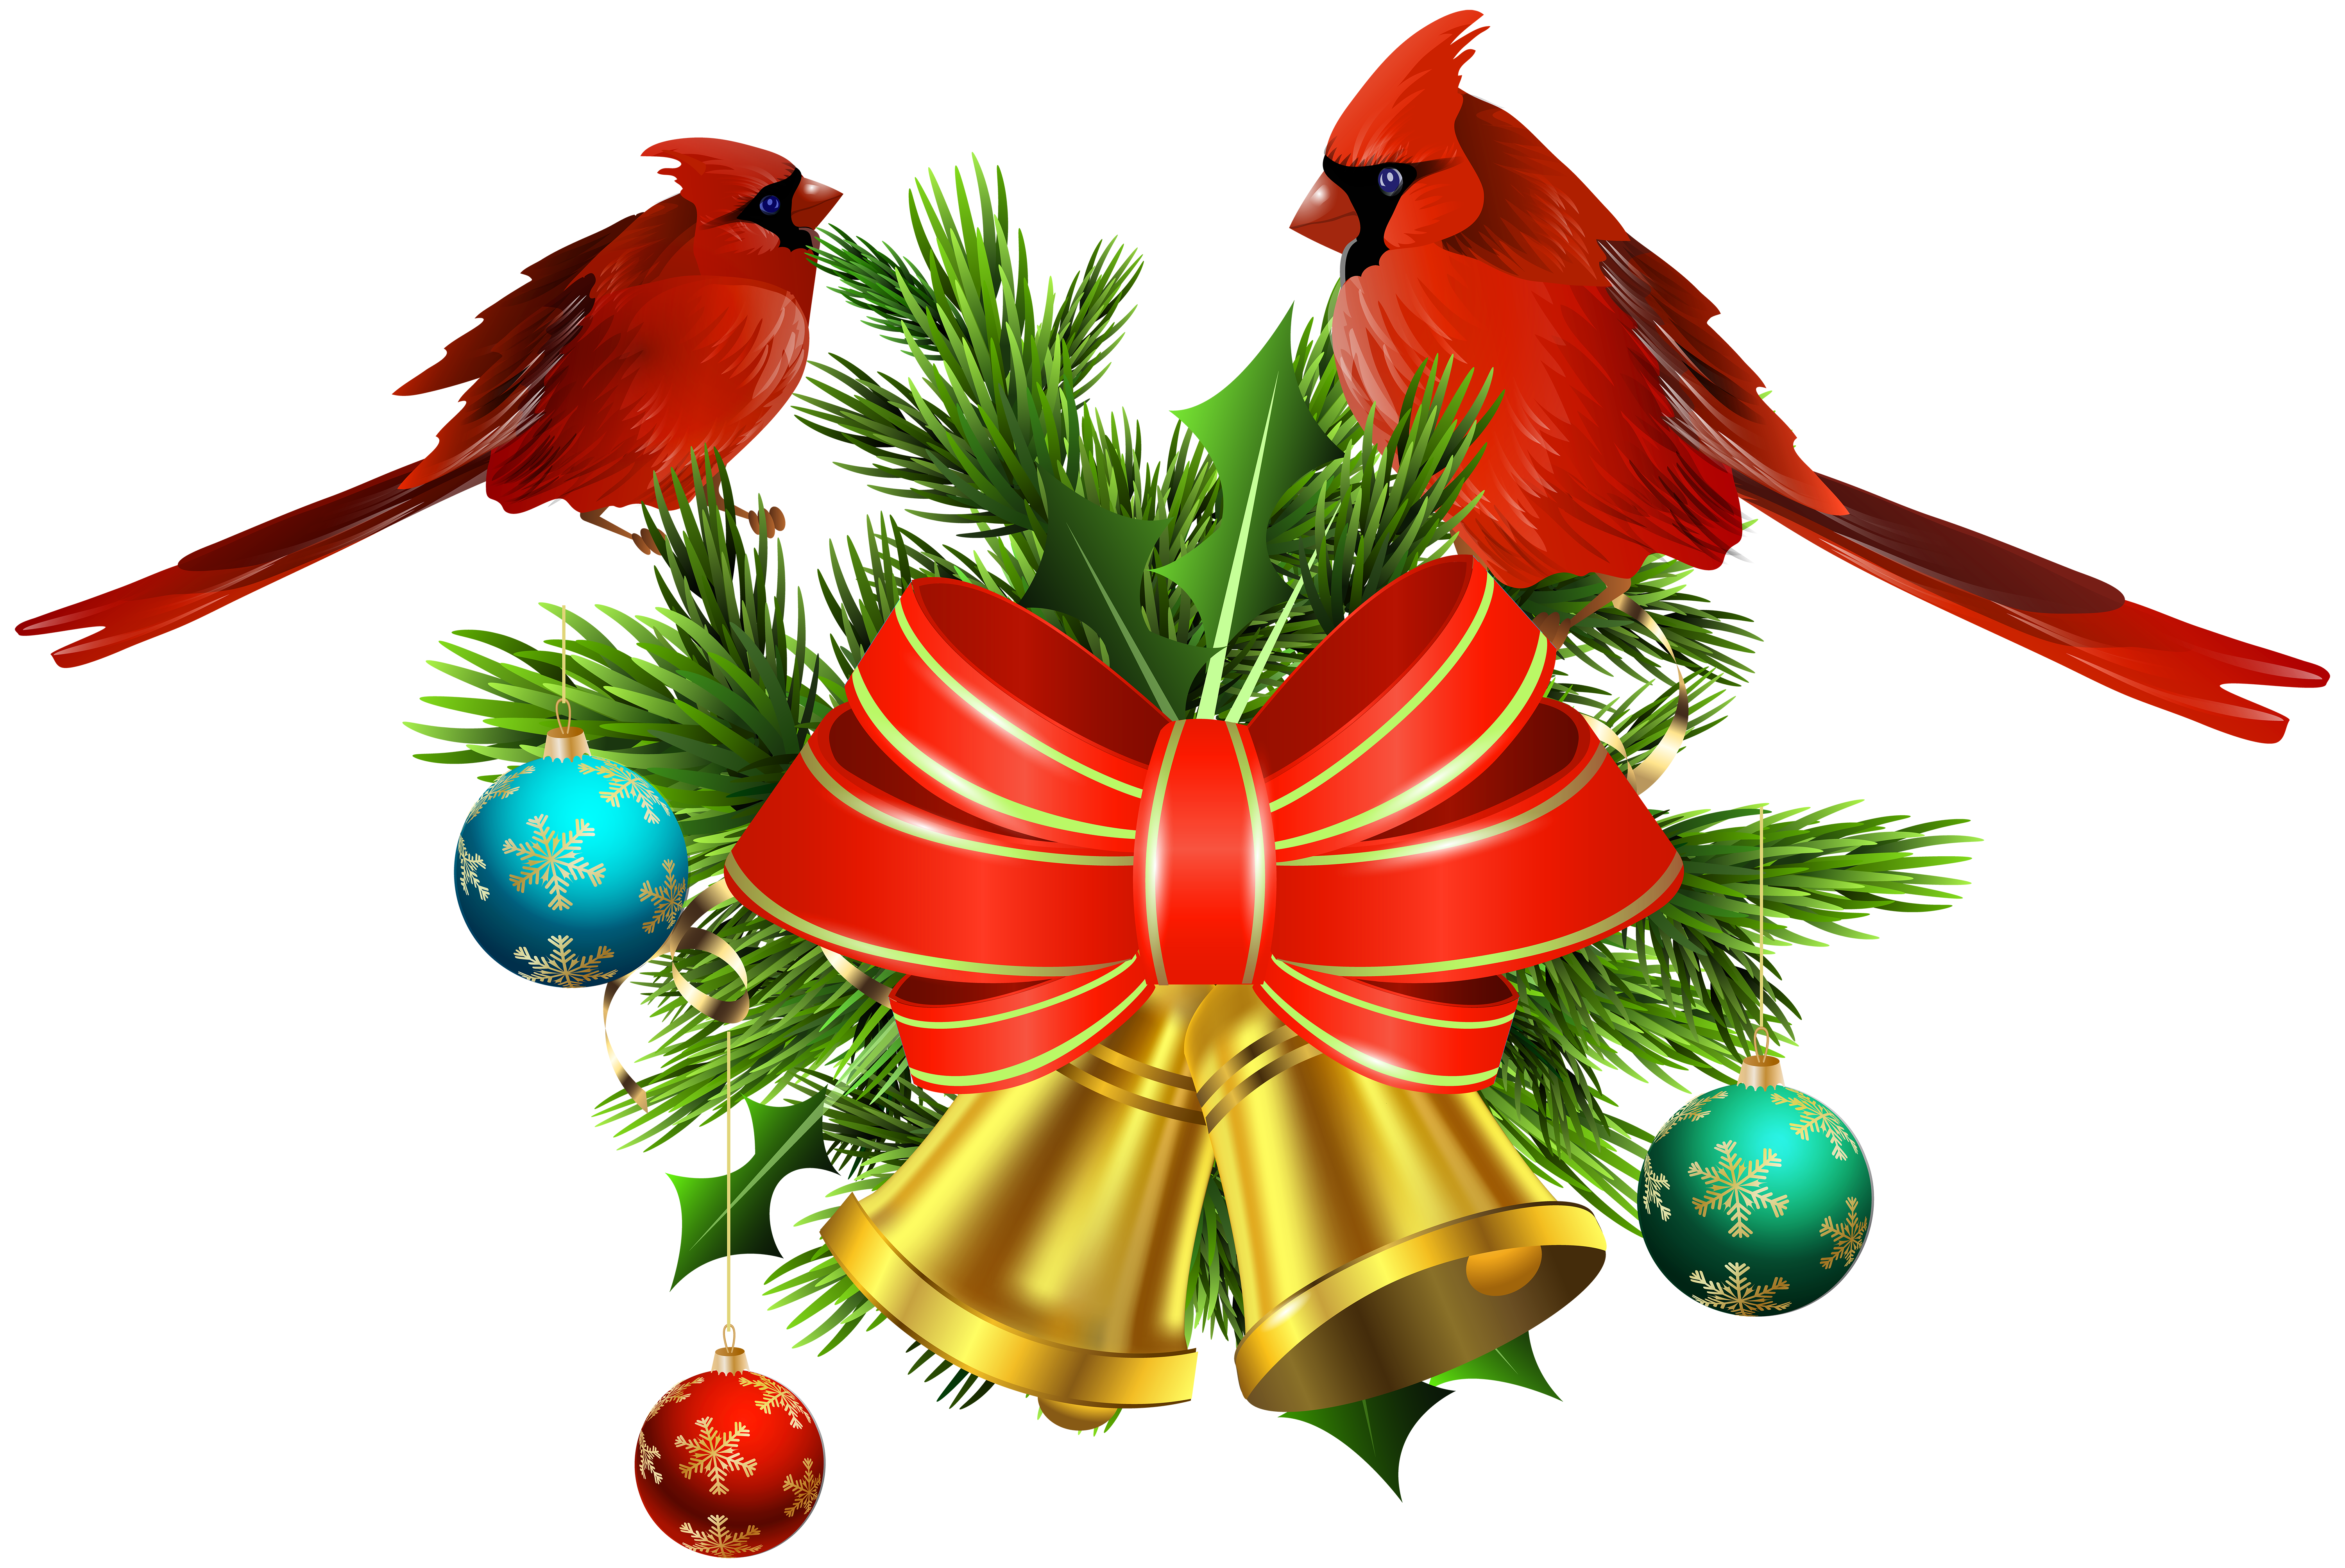 Christmas Bells Clipart.Christmas Bells Clipart At Getdrawings Com Free For